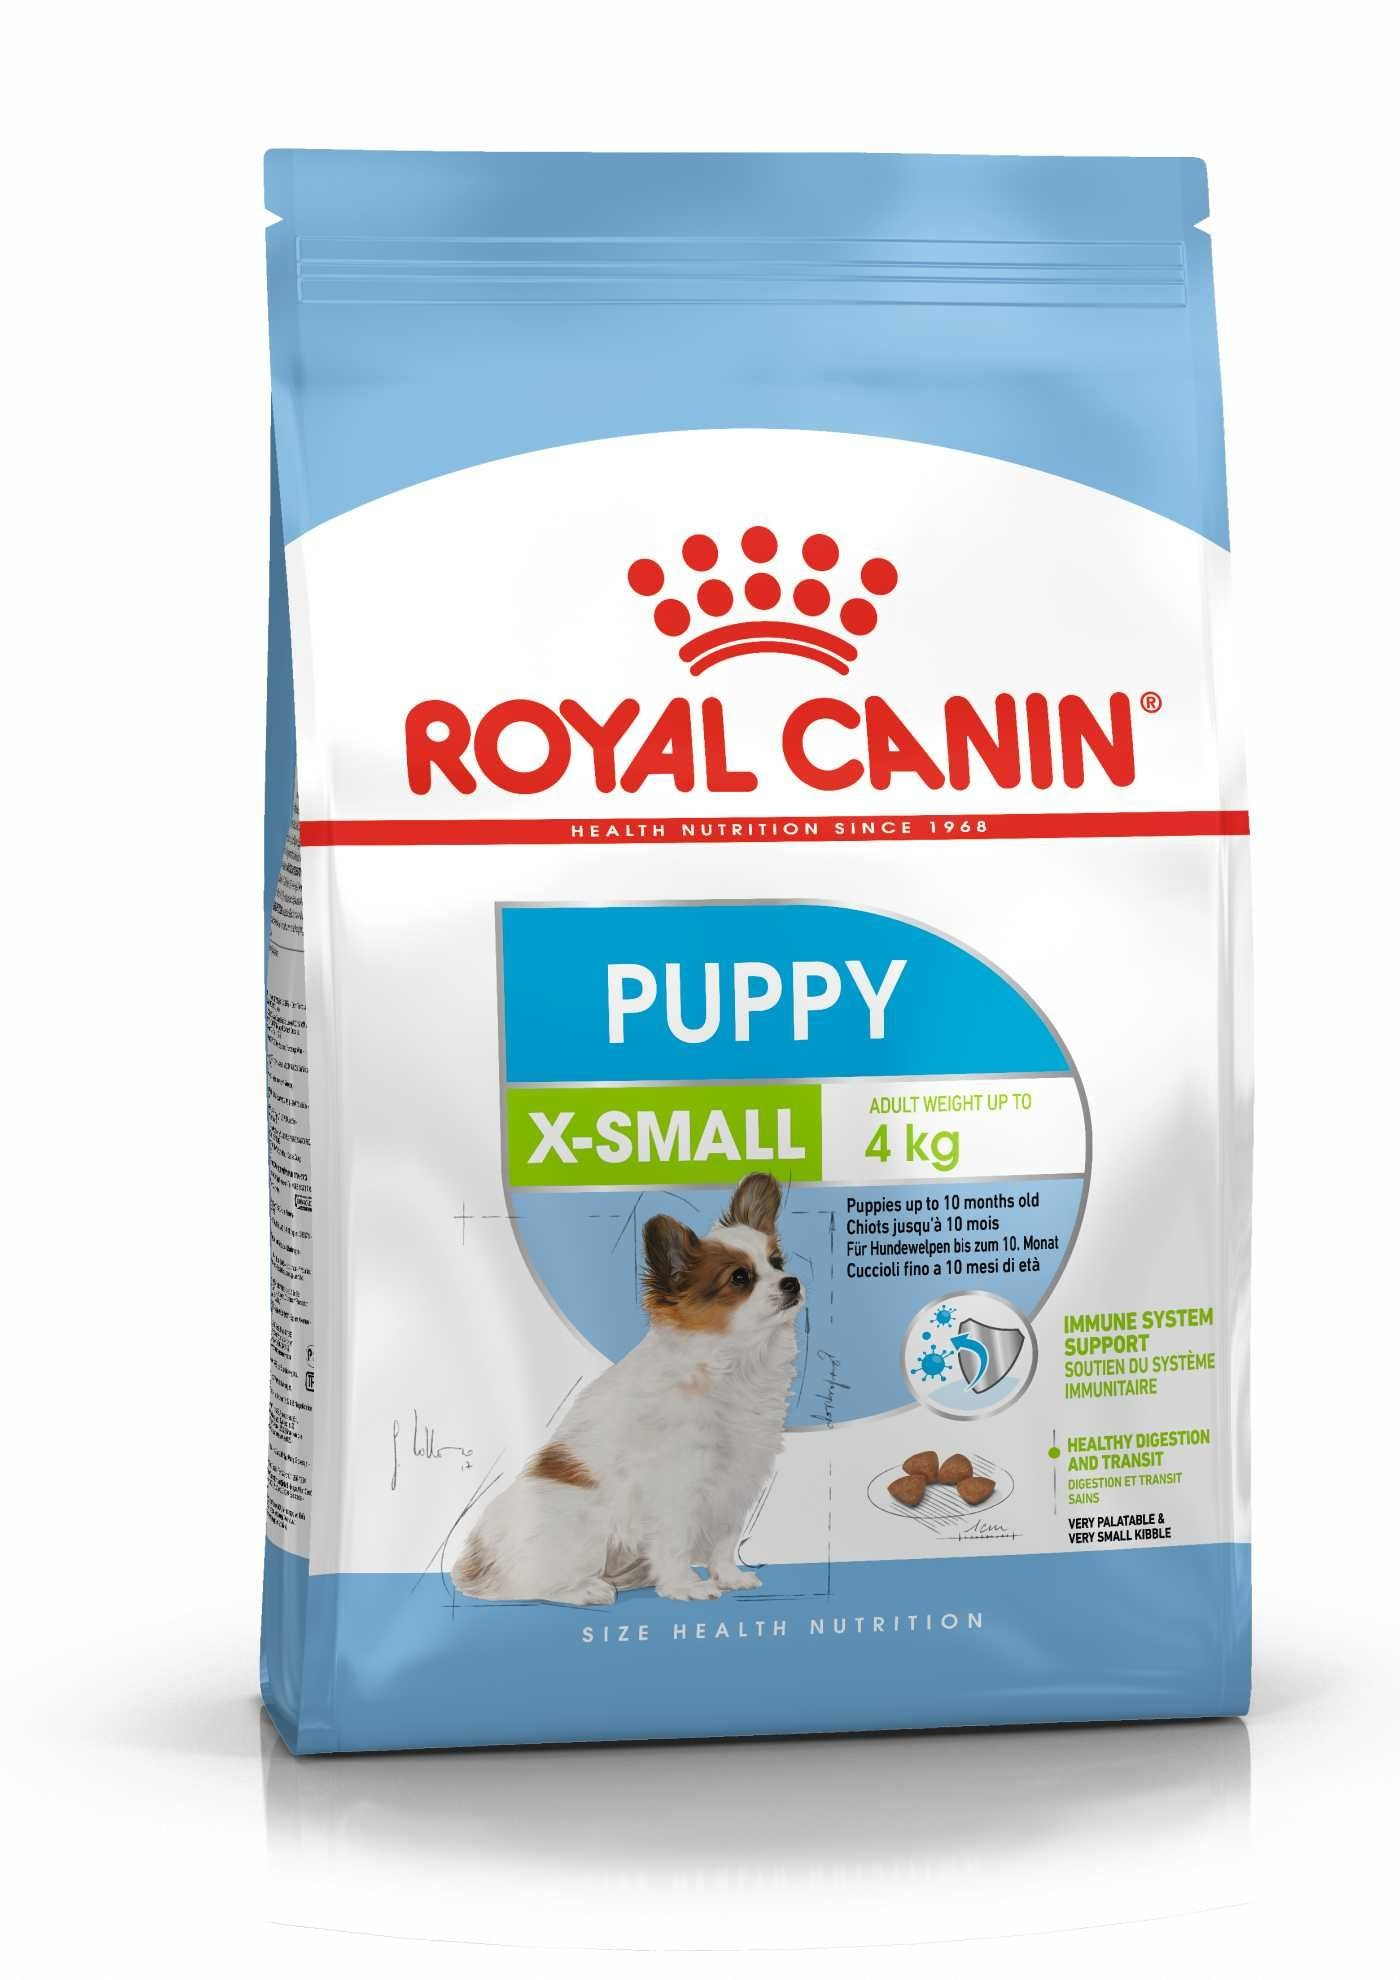 Royal Canin Royal Canin- X-Small puppy 3kg